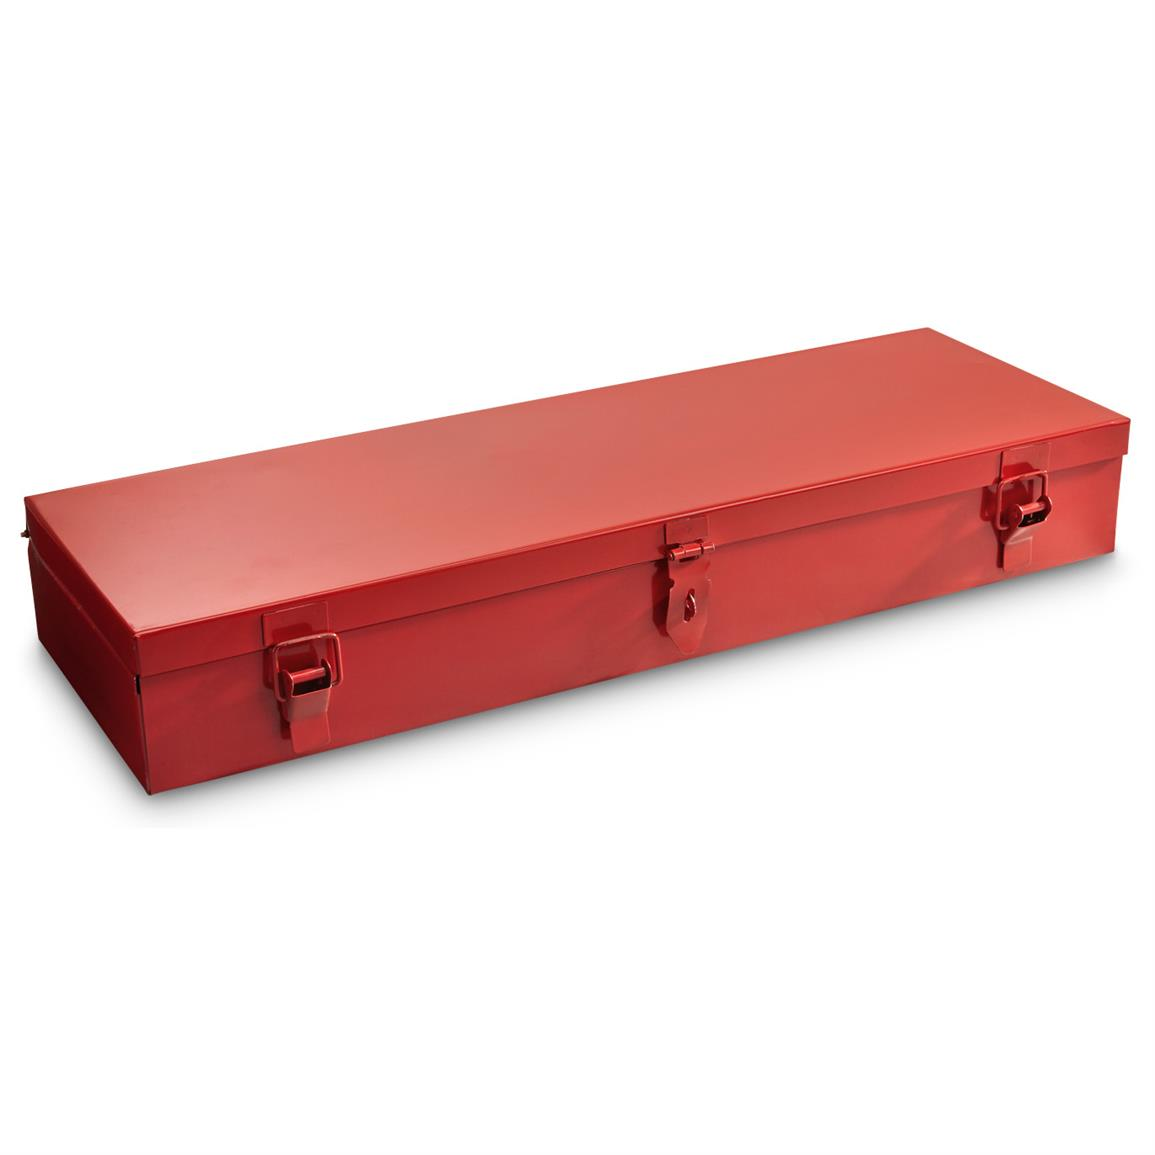 Red metal tool box keeps it all together and easy to transport